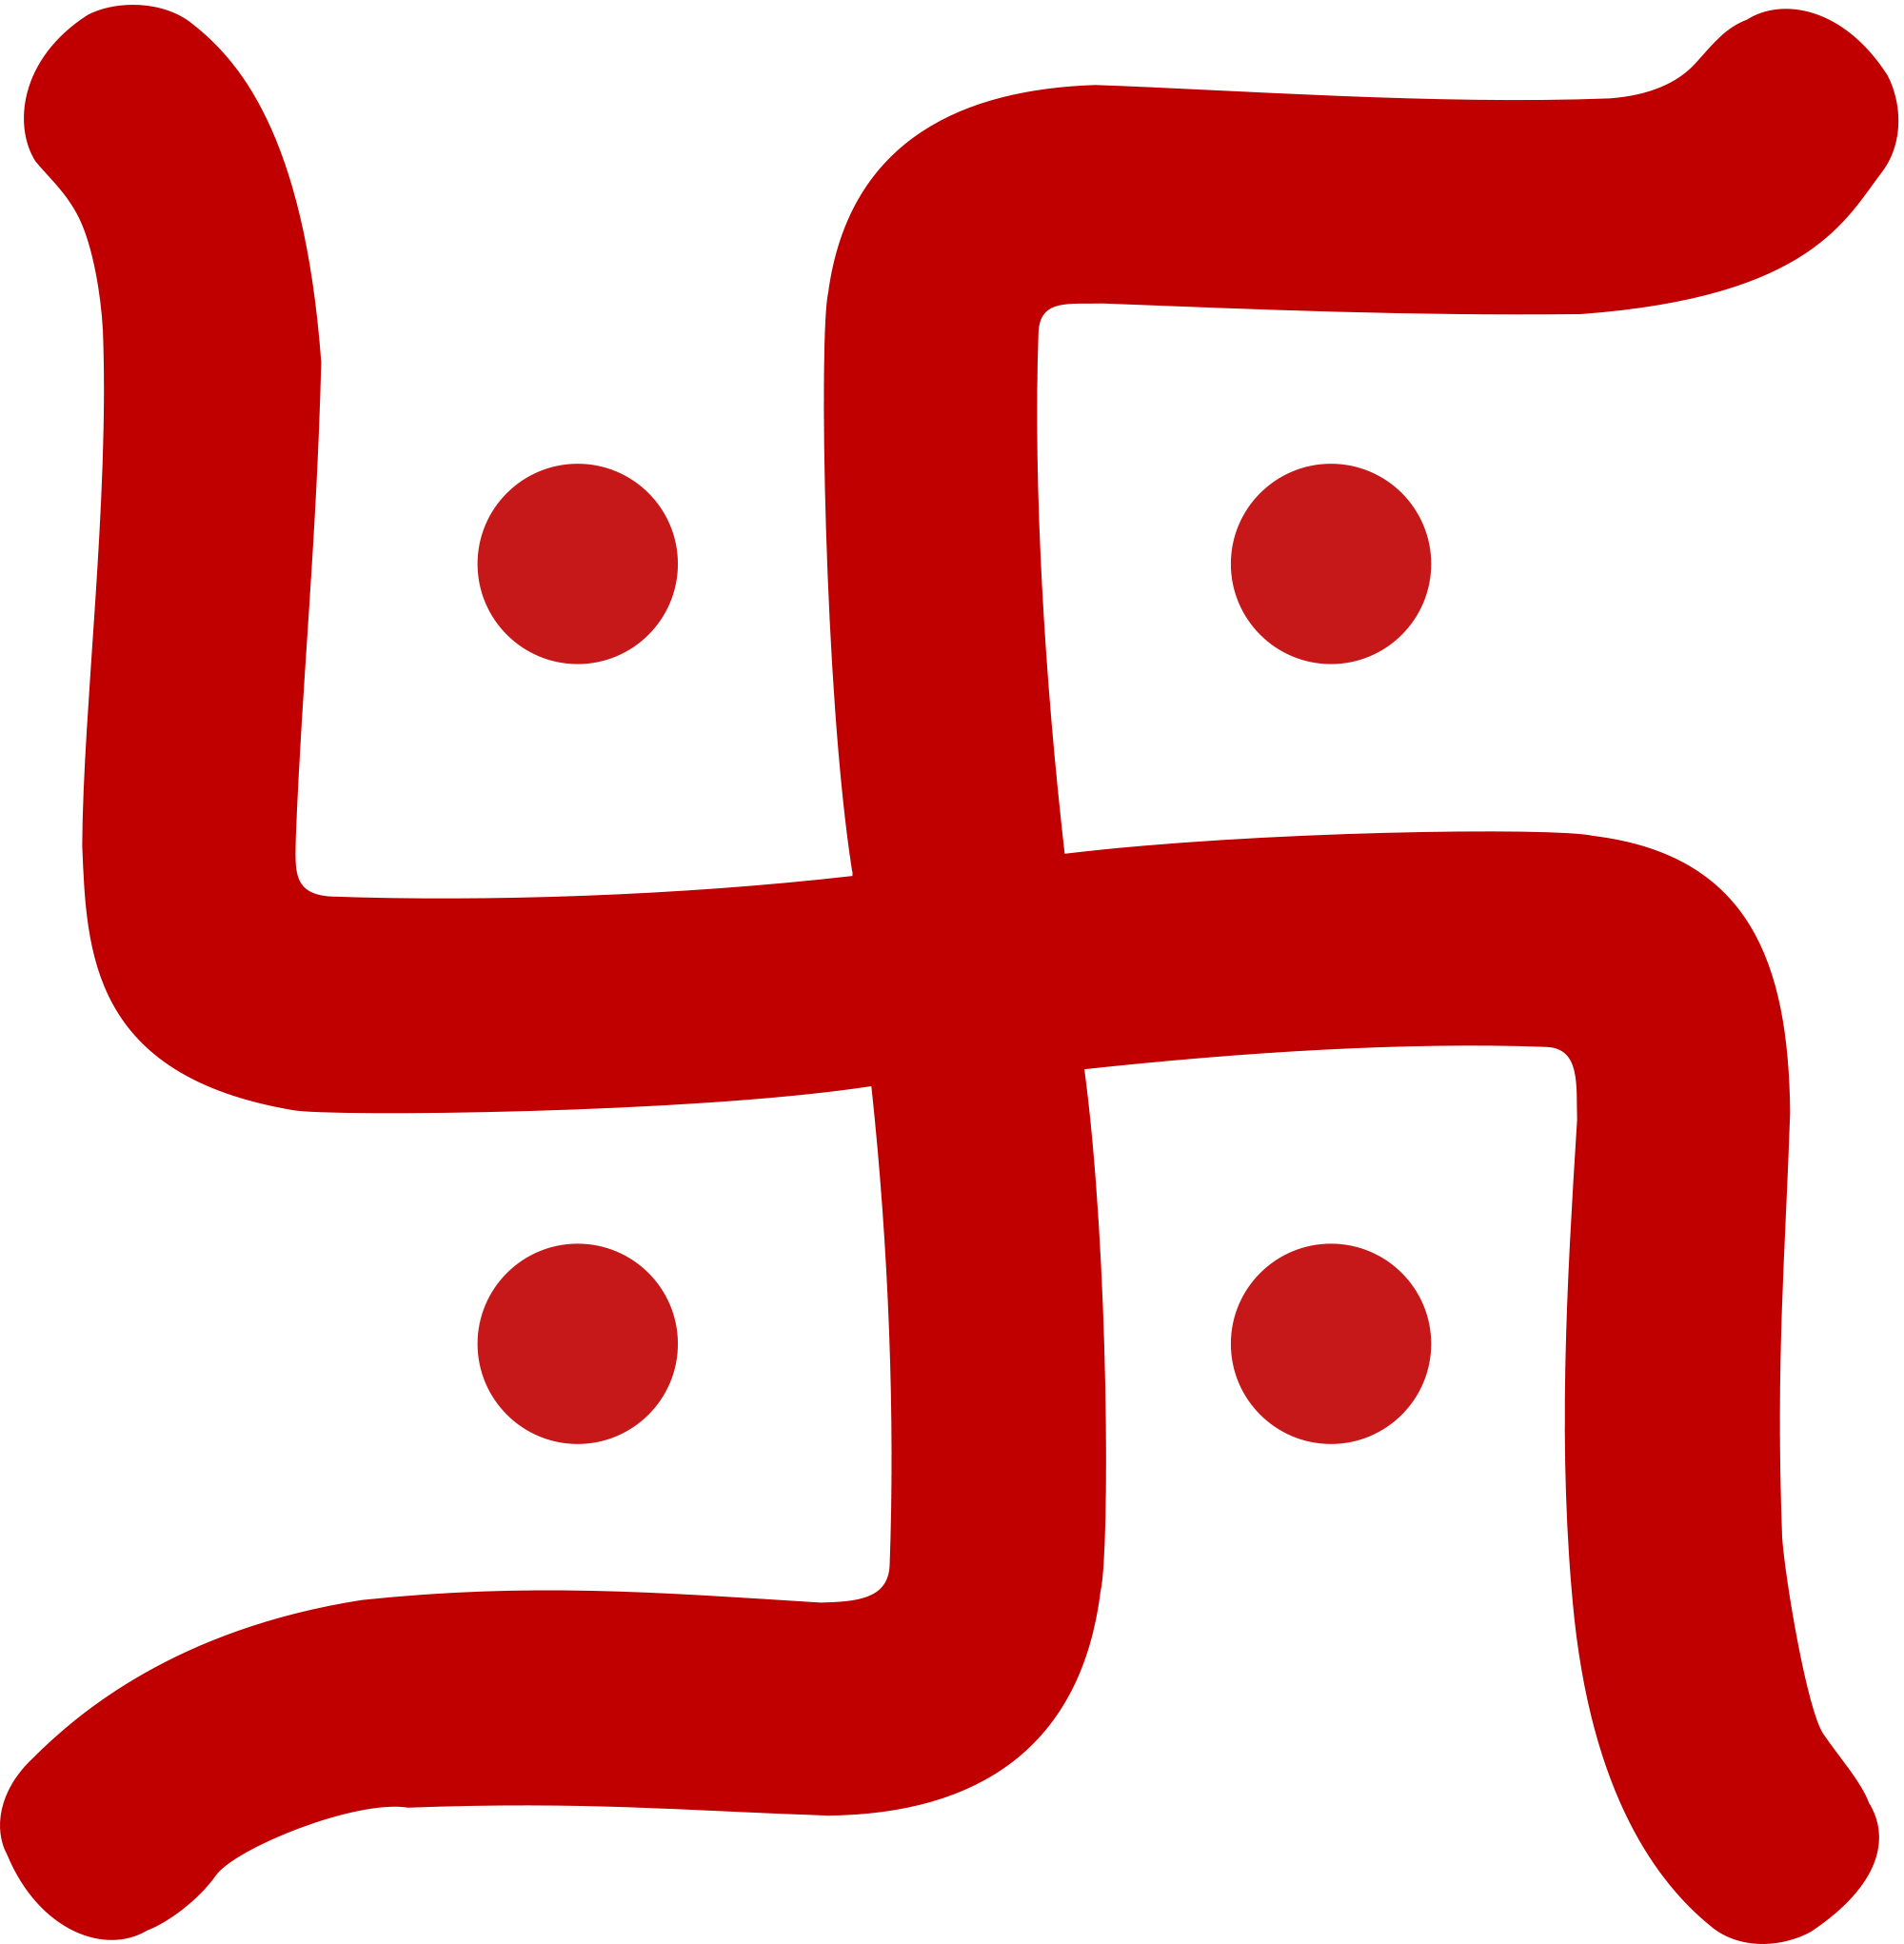 Buddhist symbols for peace image collections symbol and sign ideas hindu swastika httpuploadmediawikipediacommonsthumb hindu swastika httpuploadmediawikipediacommons buycottarizona buycottarizona